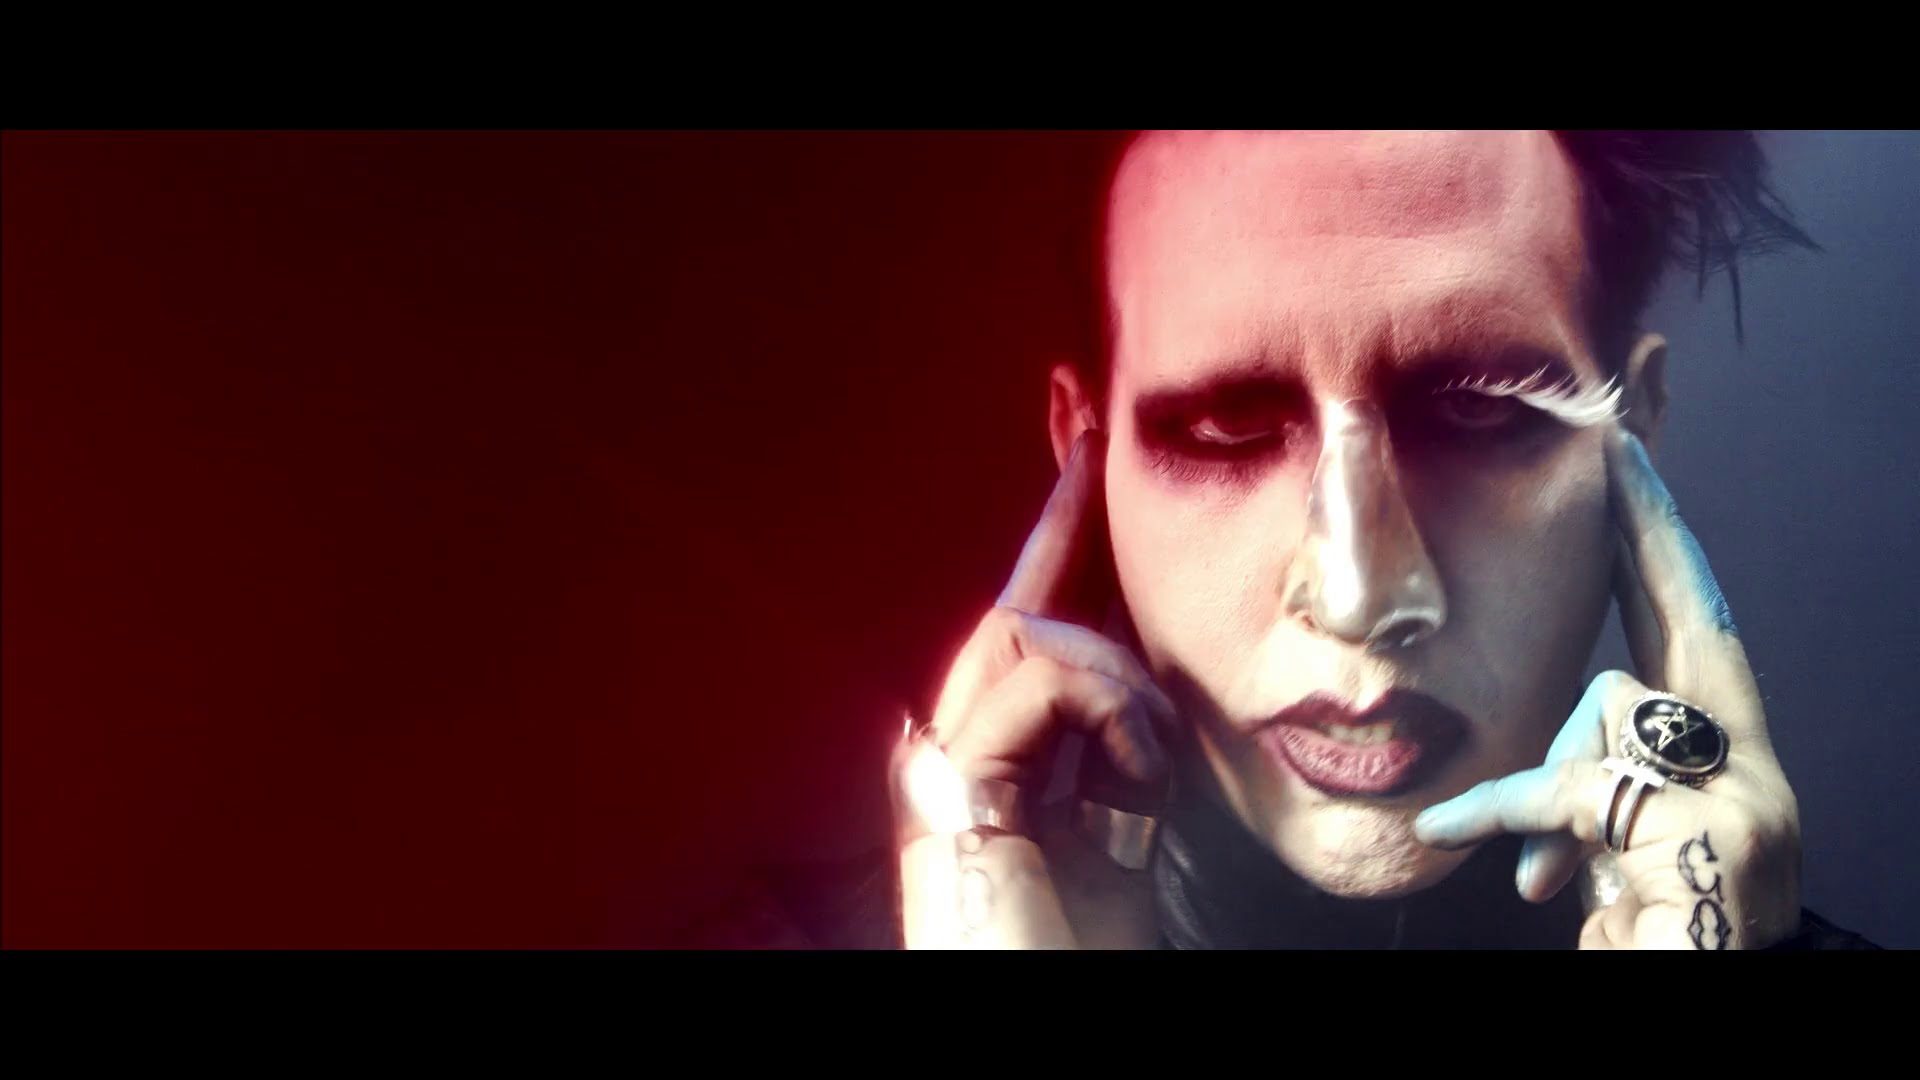 marilyn manson reschedules canceled north american tour dates in